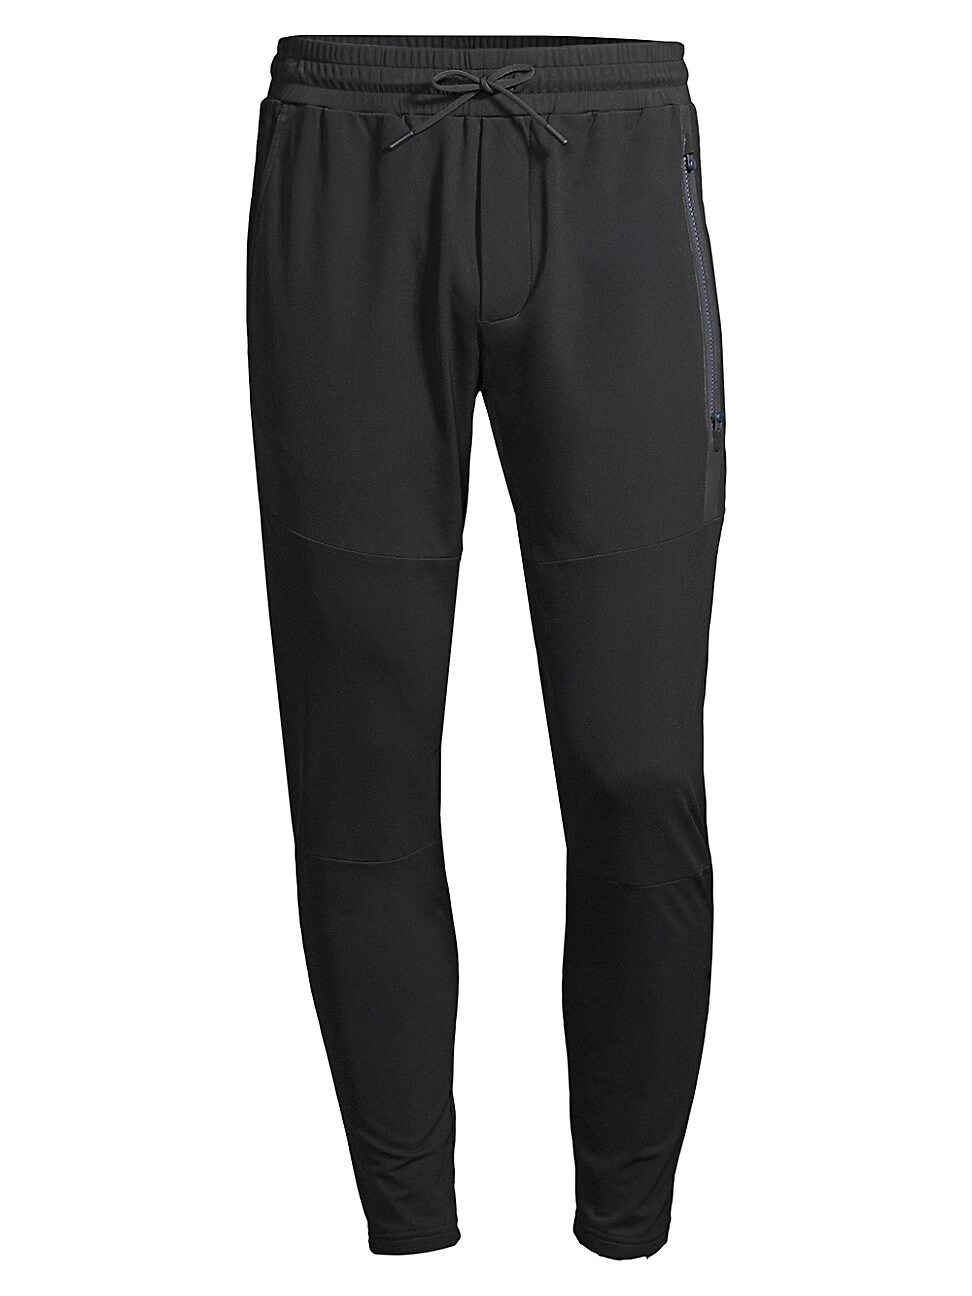 GREYSON MEN'S SEQUOIA TAPERED JOGGERS